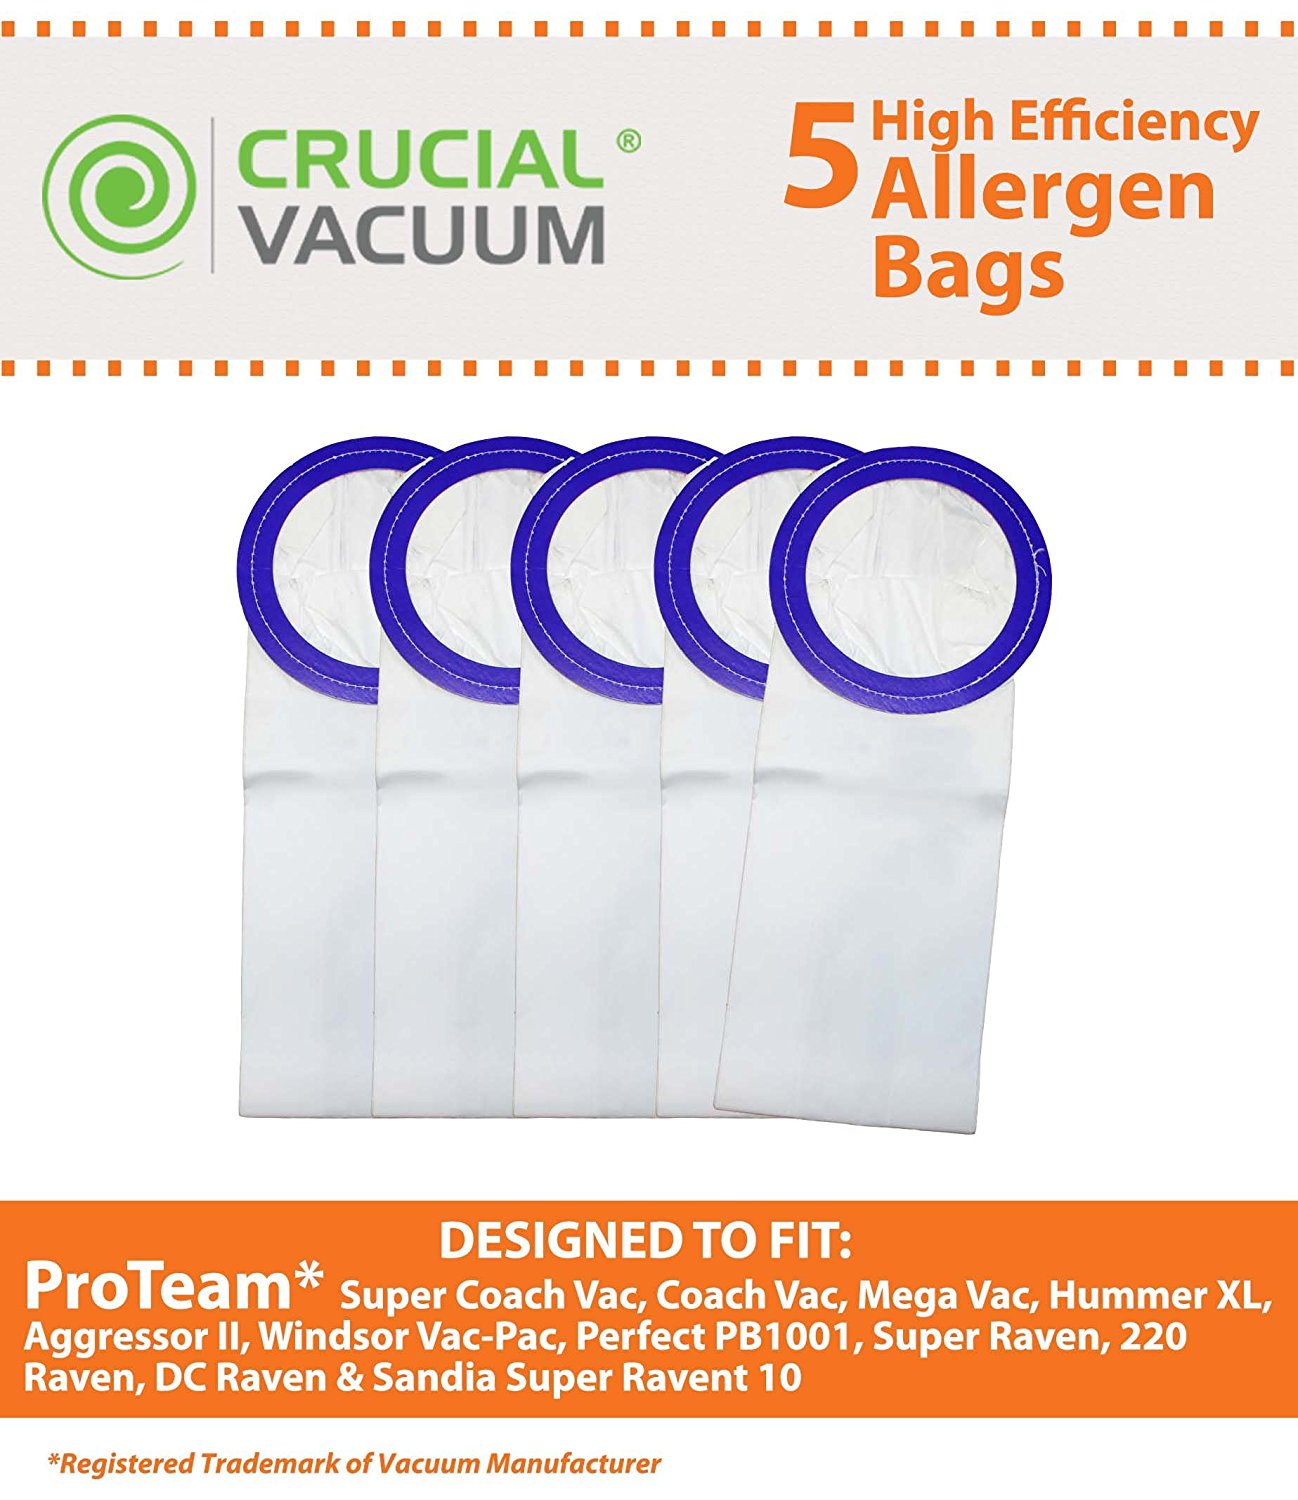 5 ProTeam 10 Quart Vacuum Bags; Fit Super CoachVac, CoachVac, MegaVac, Hummer XL, Aggressor II, Perfect PB1001, Windsor Vac-Pac, Raven Whisper Raven XP-3, Super Raven, 220 Raven, DC Raven, Sandia Super Raven 10 & XP-3 Whisper; Part # 100331; Designed & Engineered by Crucial Vacuum